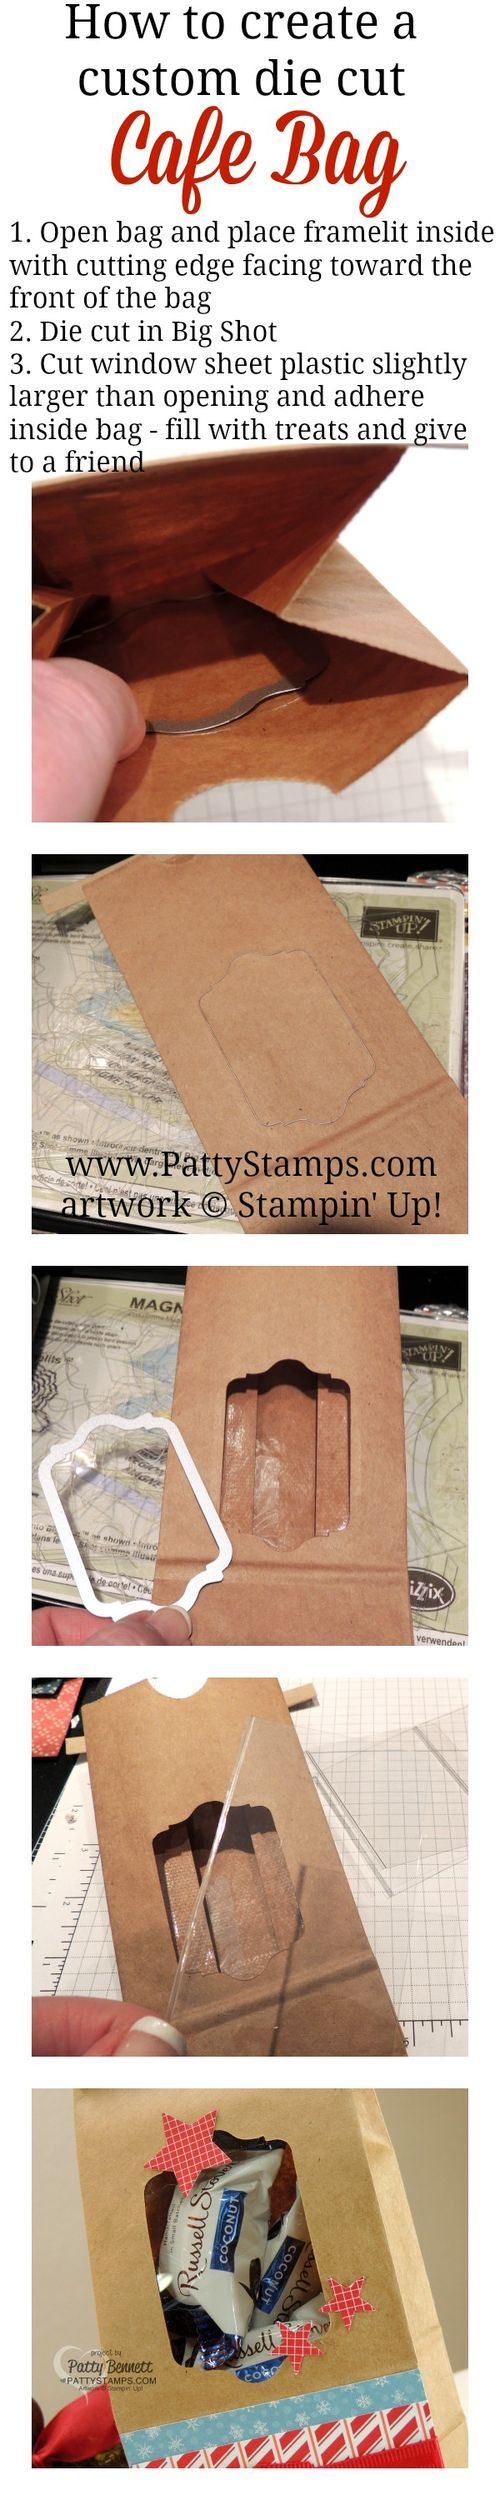 How to customize a Cafe Treat Bag with a die cut opening. Use Stampin' Up! framelits and a Big Shot to create a fun Christmas Gift Bag. by Patty Bennett #stampinup #giftbag #christmas #pattystamps